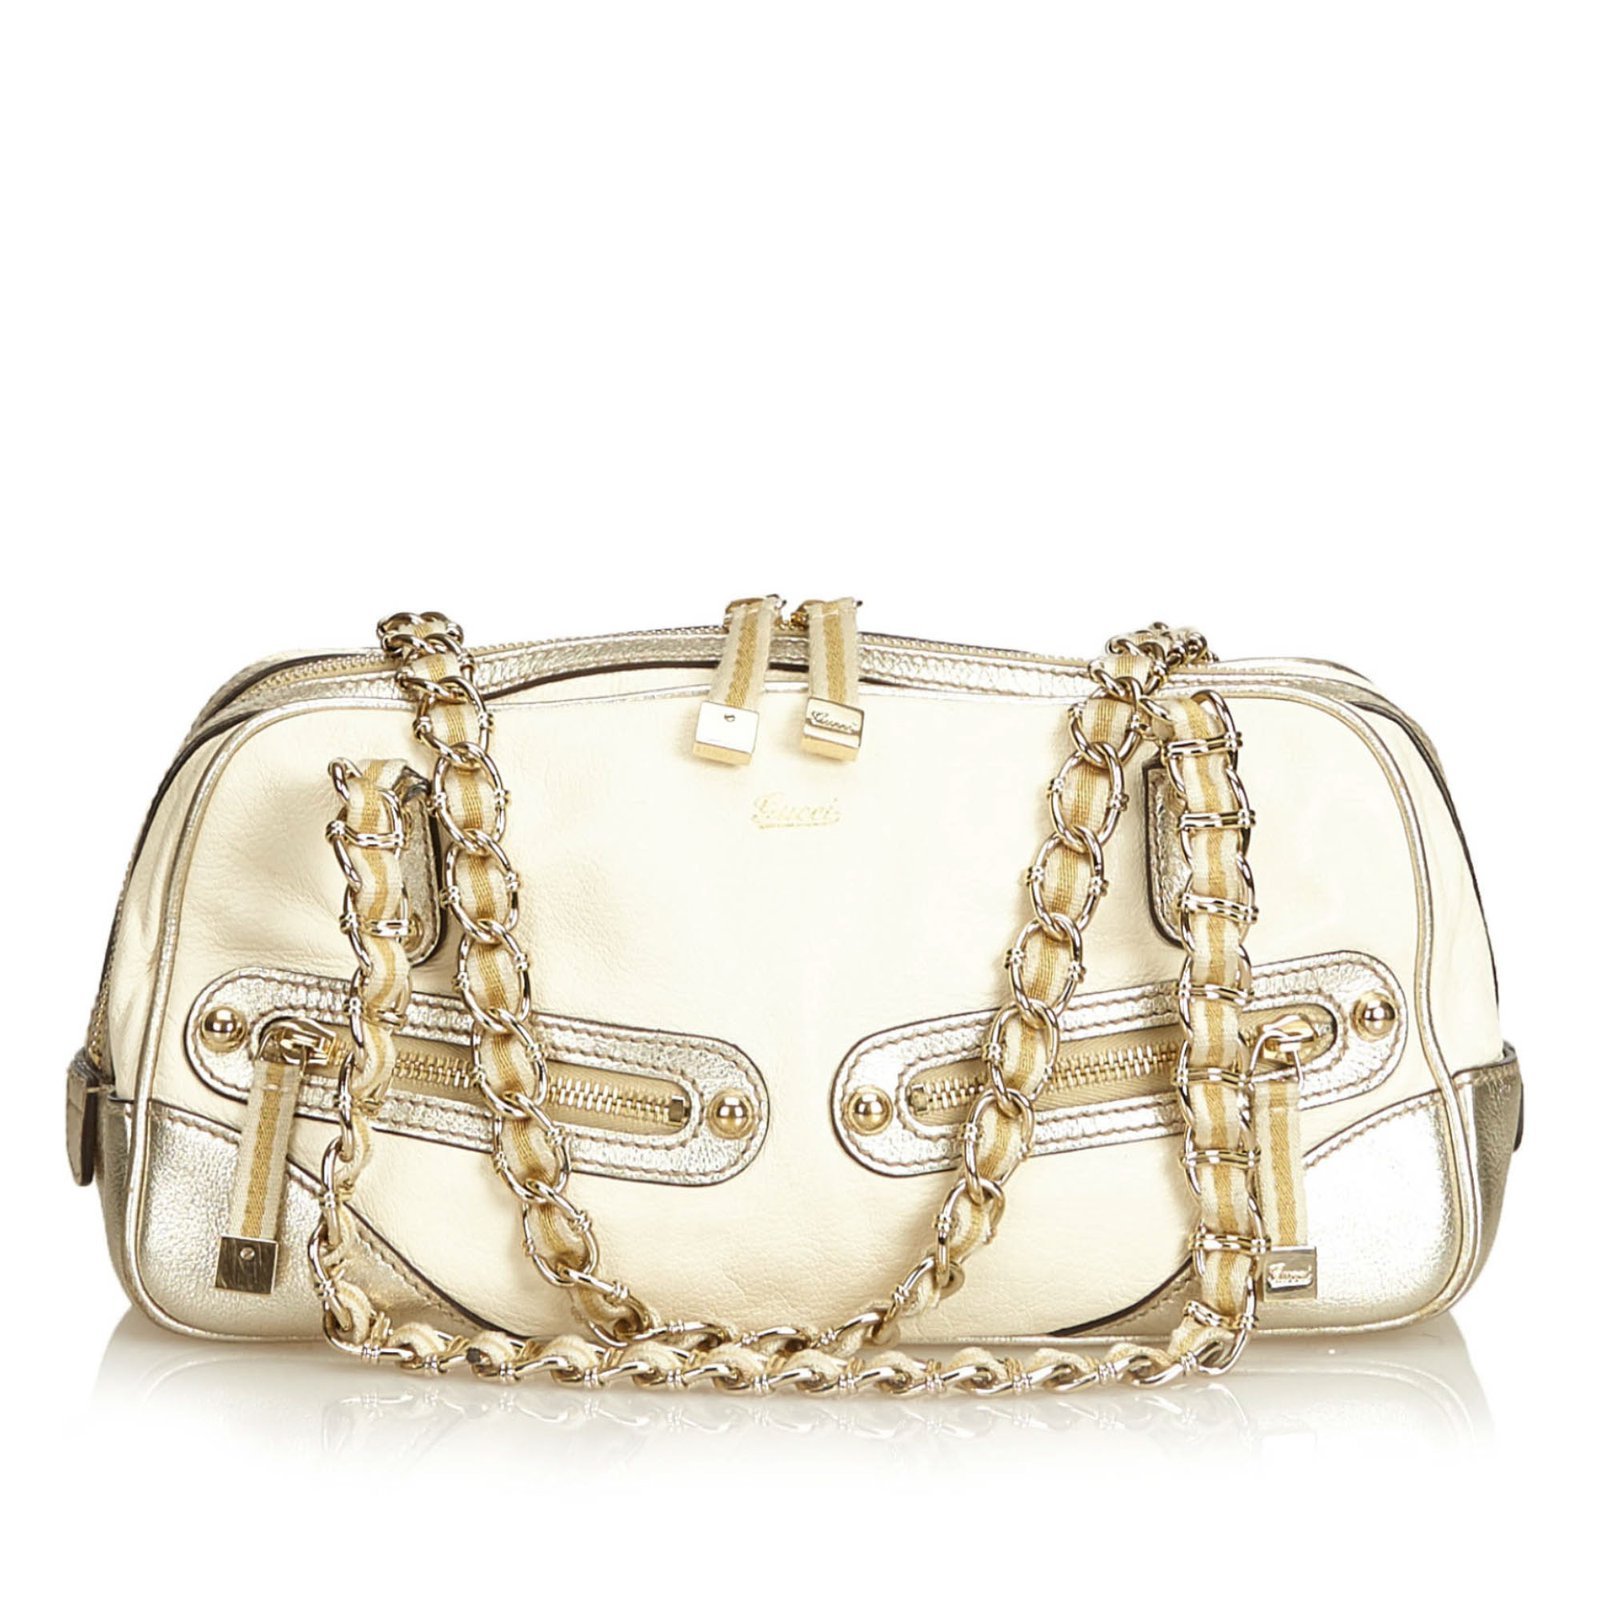 1fdee048b2f1 Gucci Leather Princy Shoulder Bag Handbags Leather,Other White,Golden,Cream  ref.